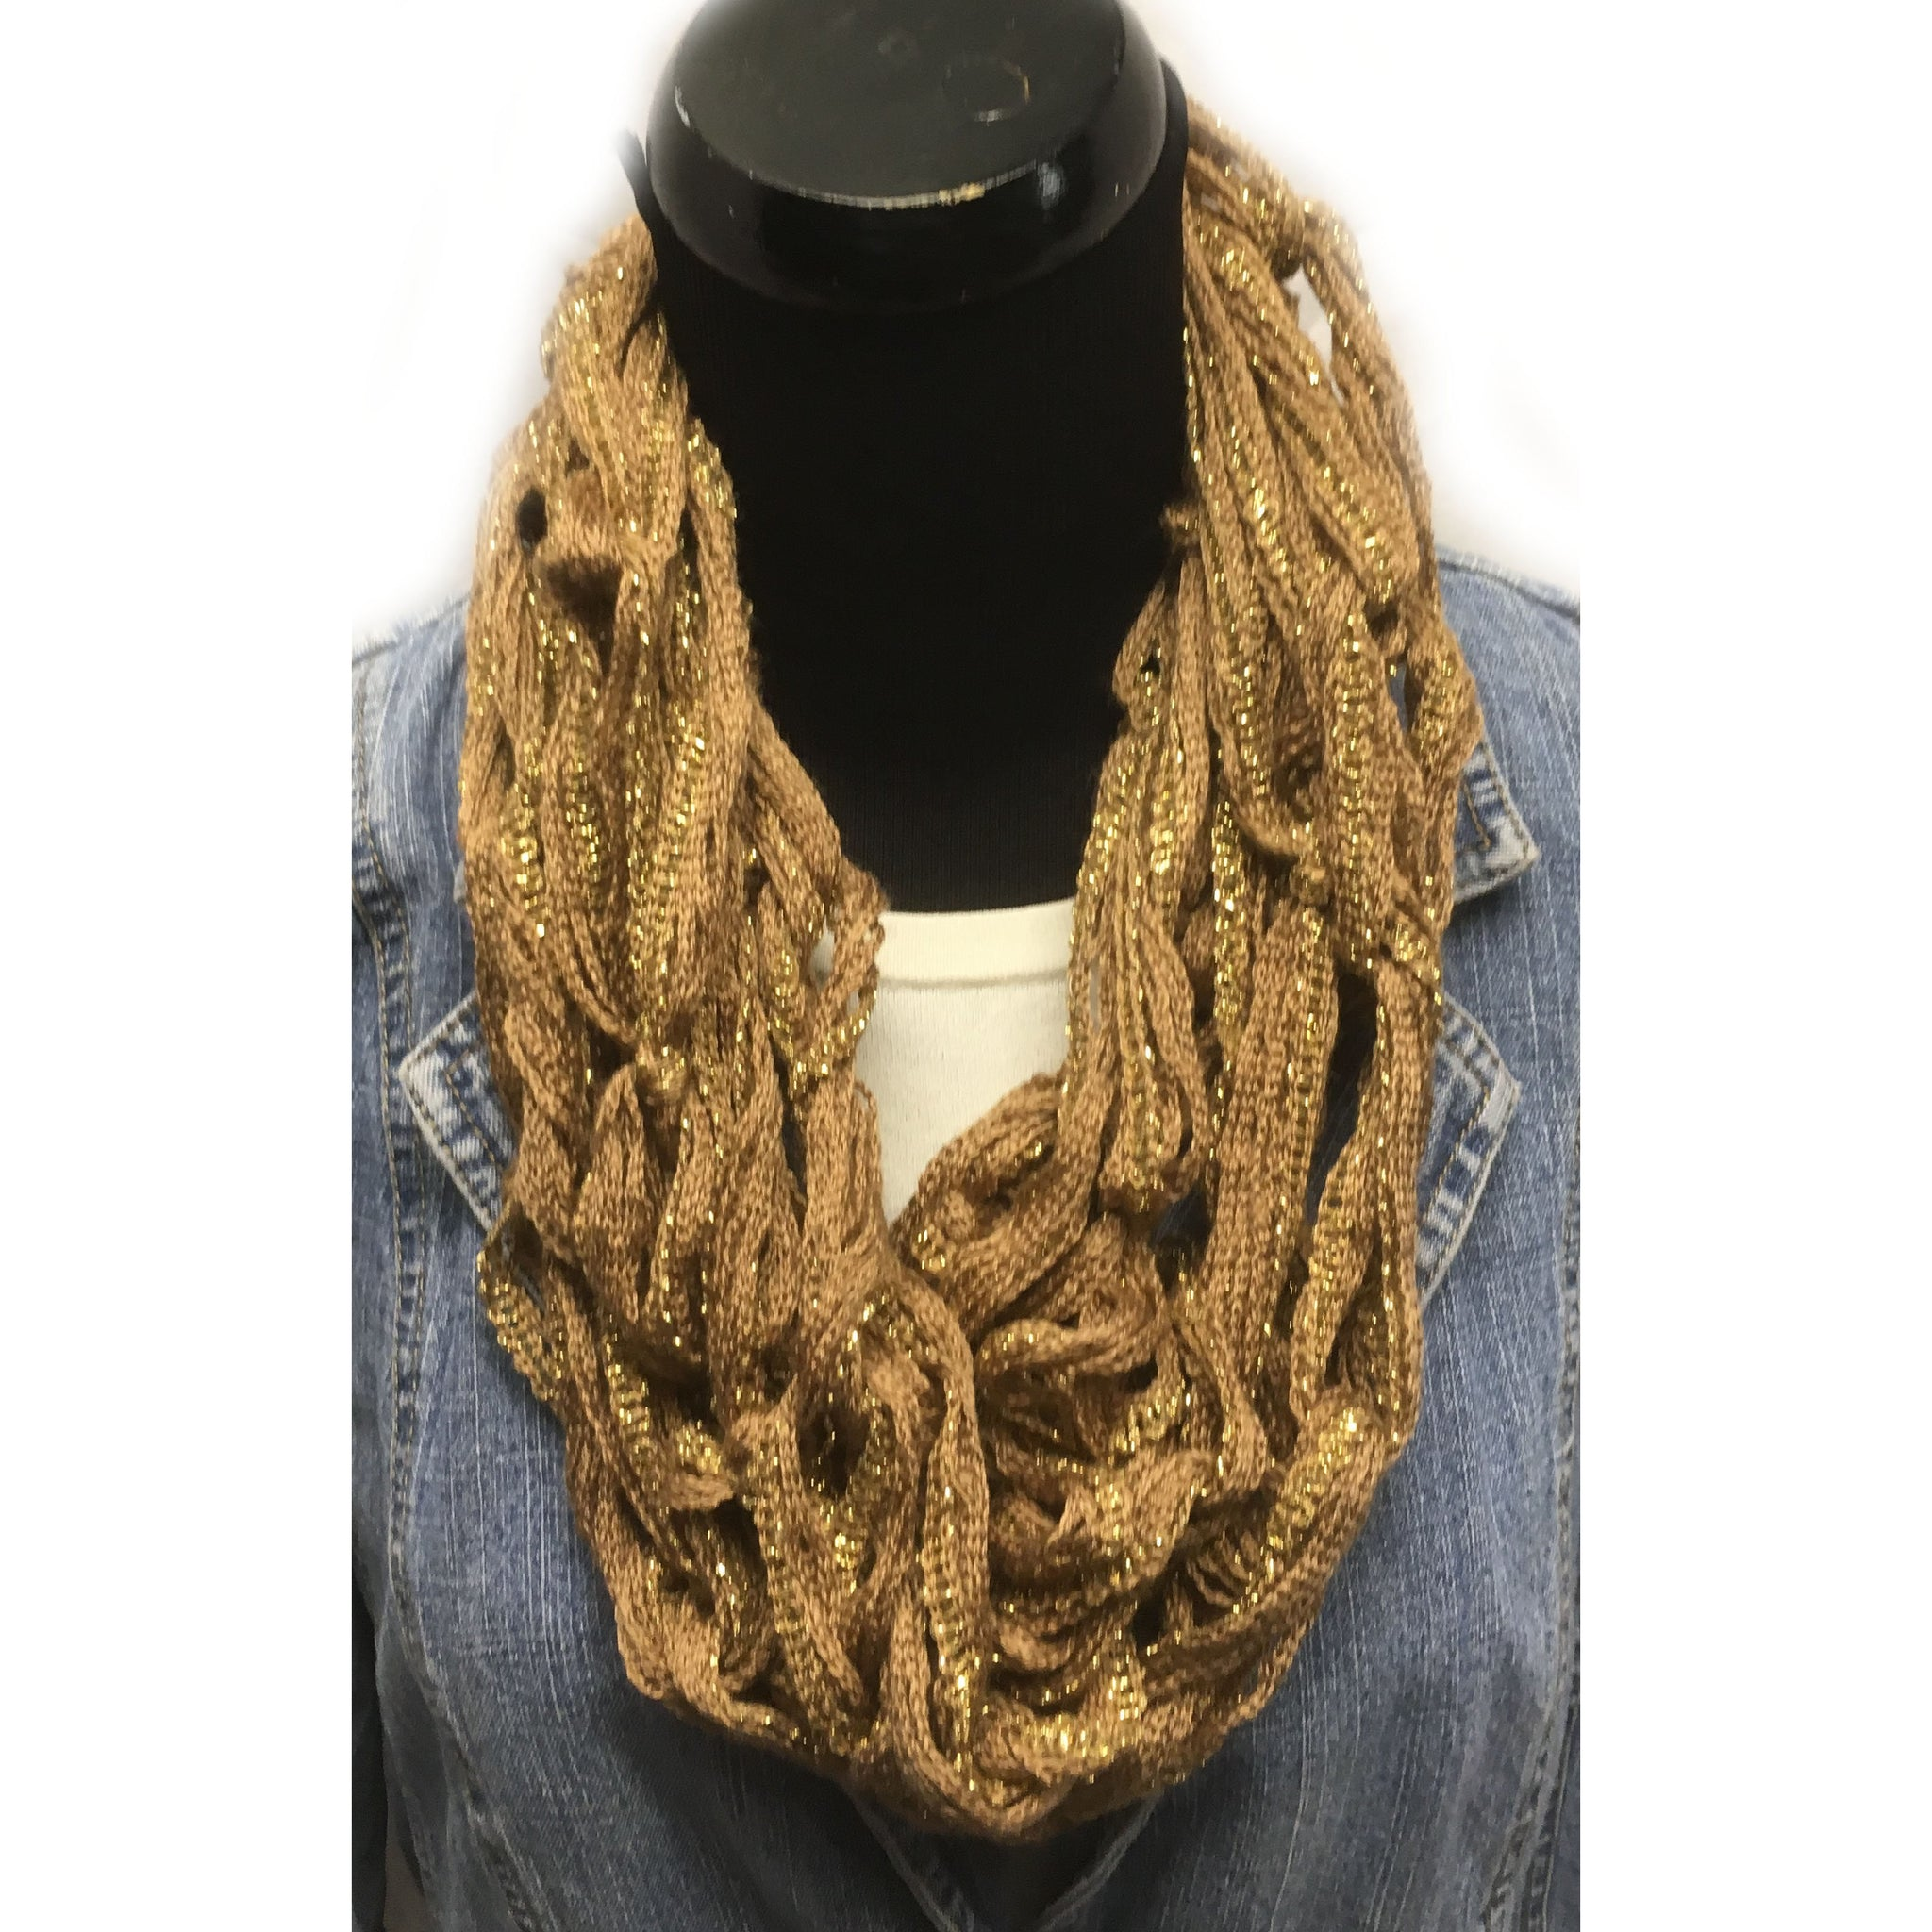 Gold with metallic arm knit infinity yarn scarf